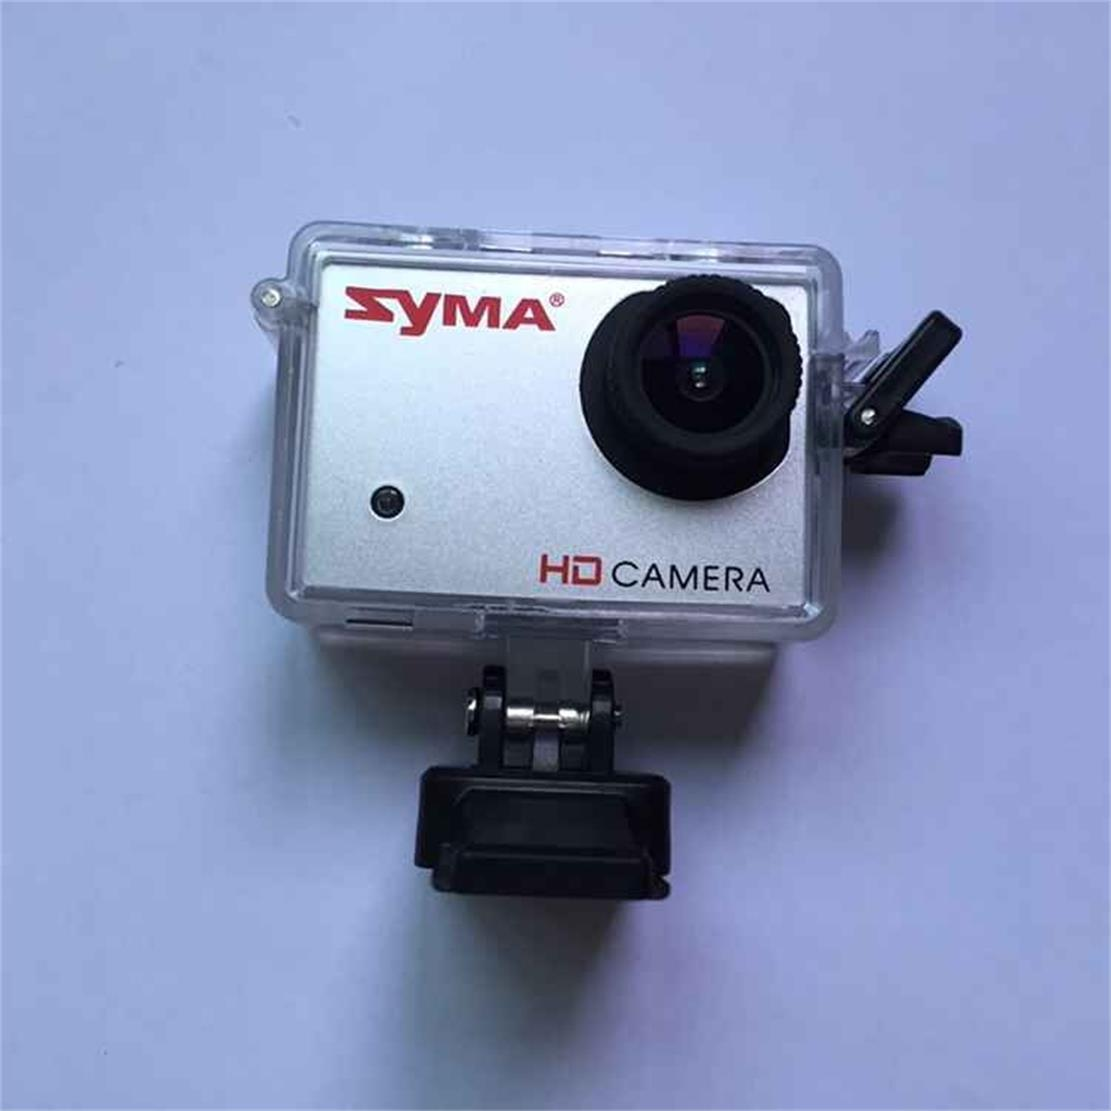 8mp Camera For SYMA X8G Rc Drones Camera Hd Helicopter Accessories Spare Part Quadcopter Kits(China (Mainland))